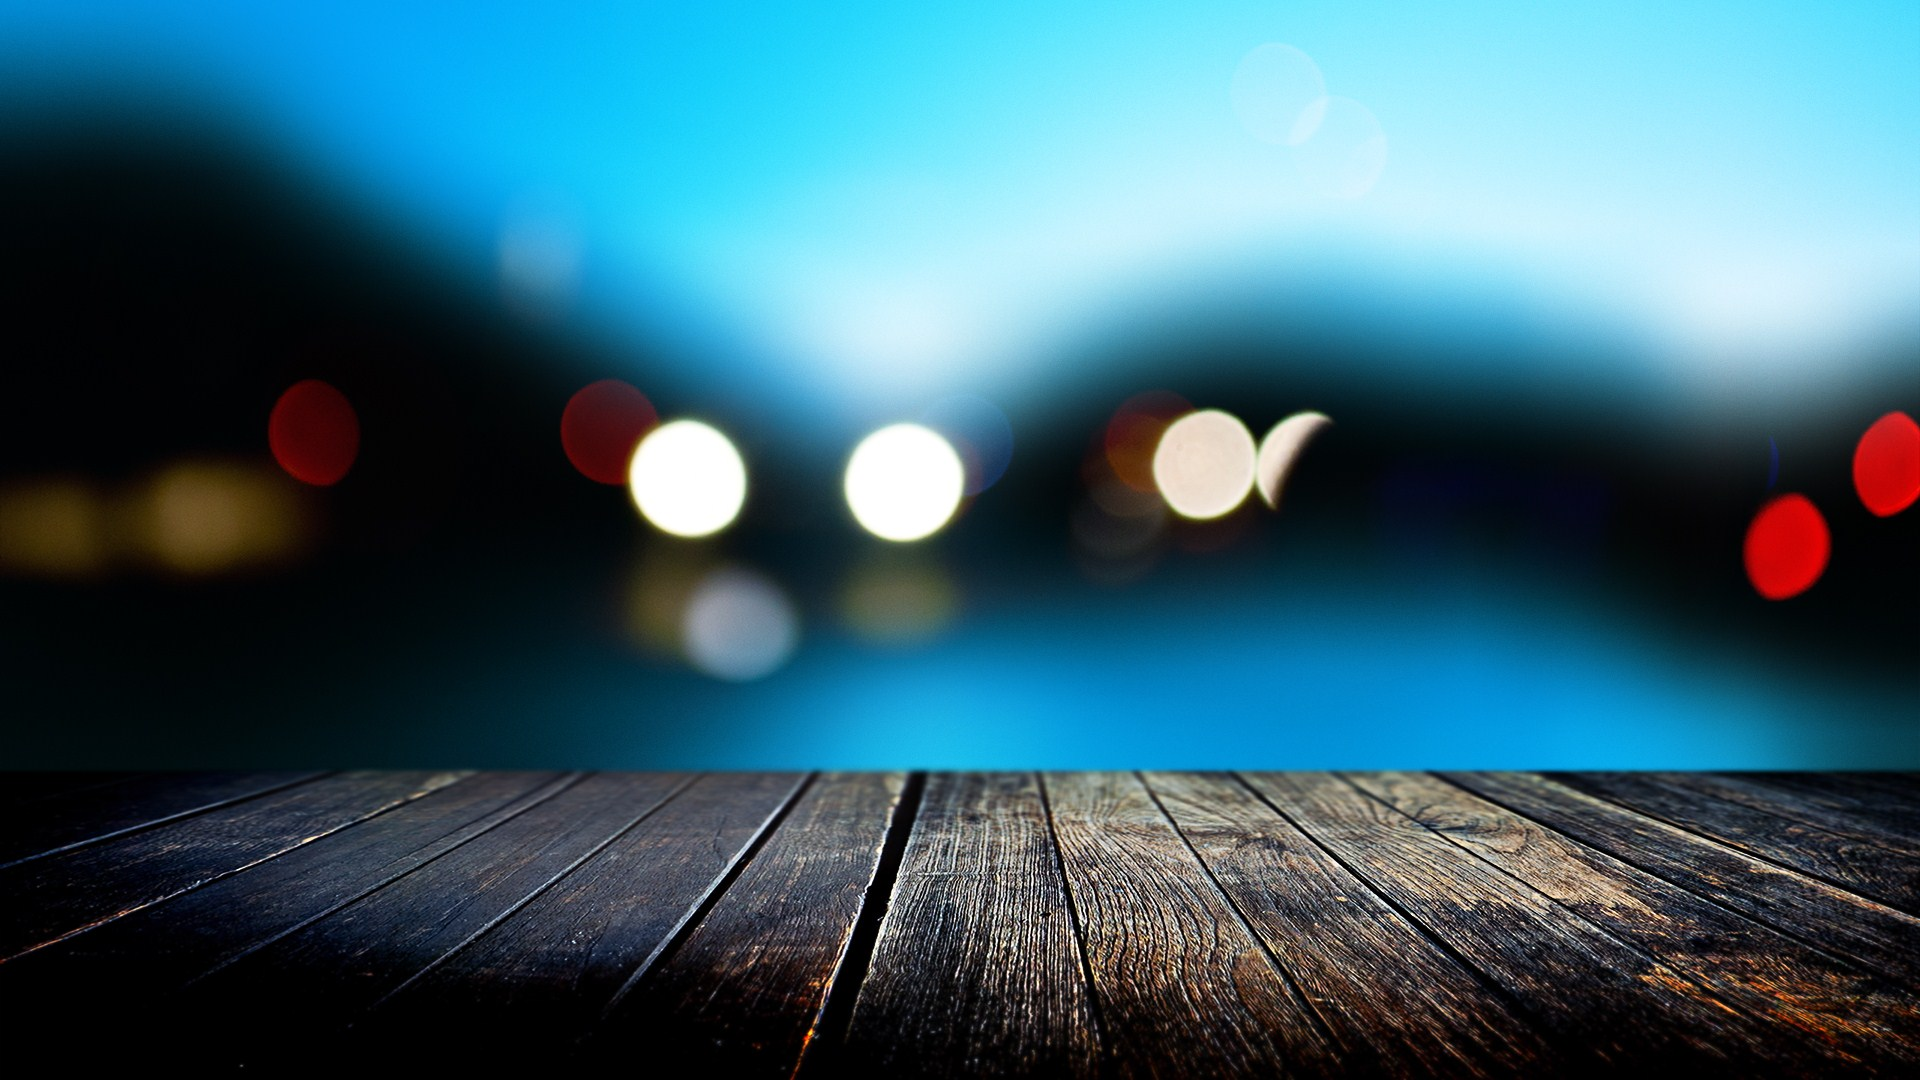 Endearing Best Hd Wallpaper: Special Wooden Bridge Deck in Night View Photography Blur Backgrounds River Wallpaper 1920x1080px